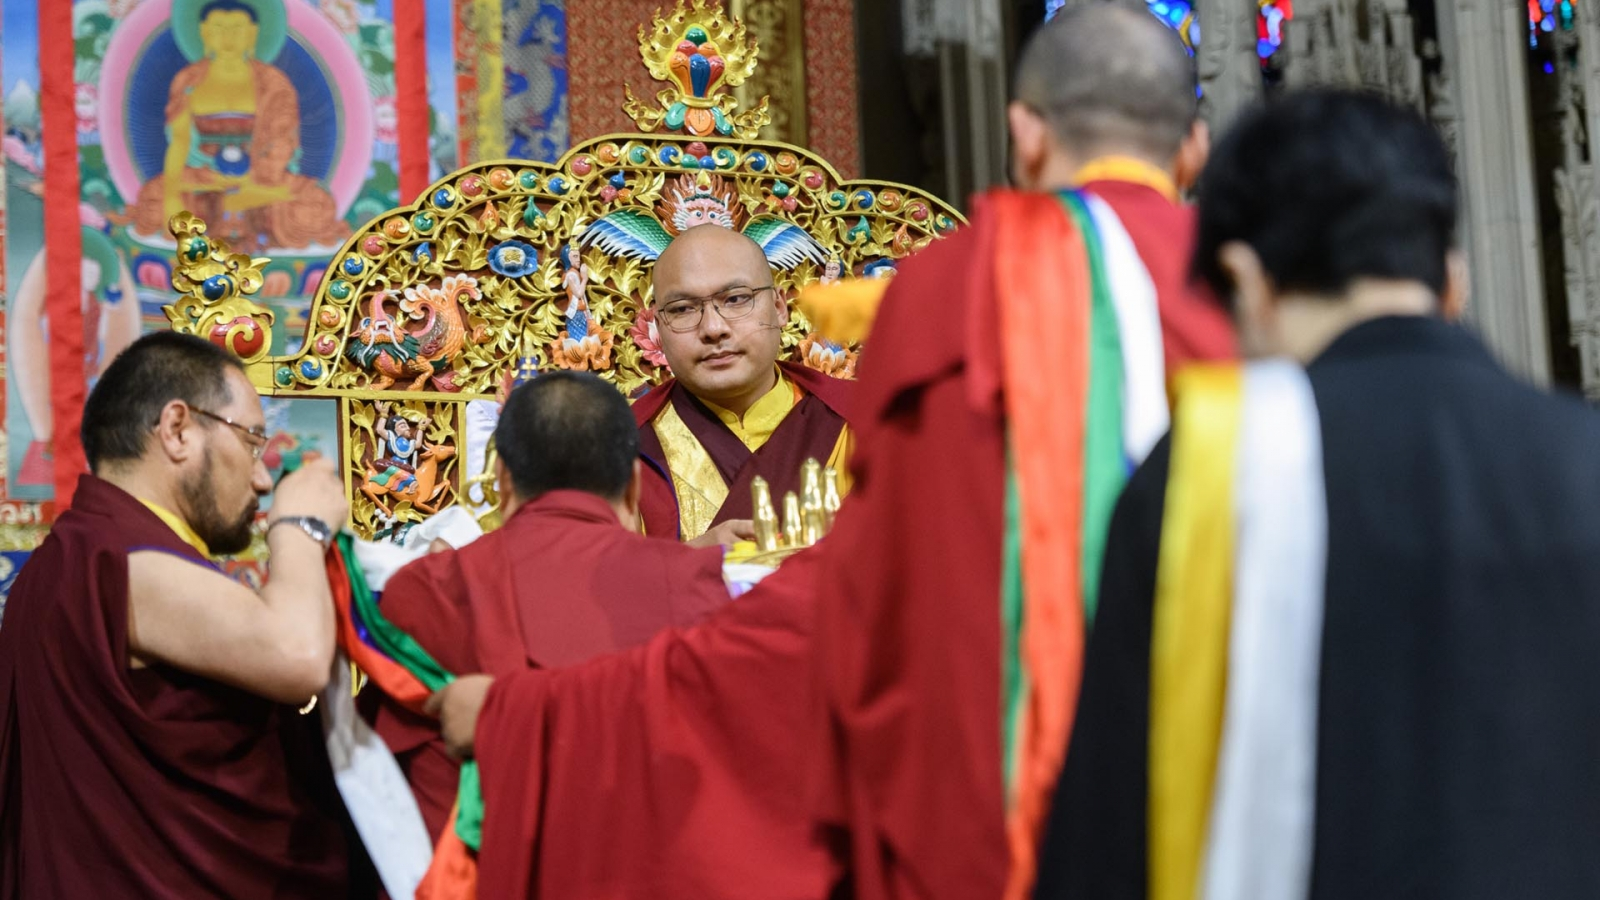 Karmapa receives offerings